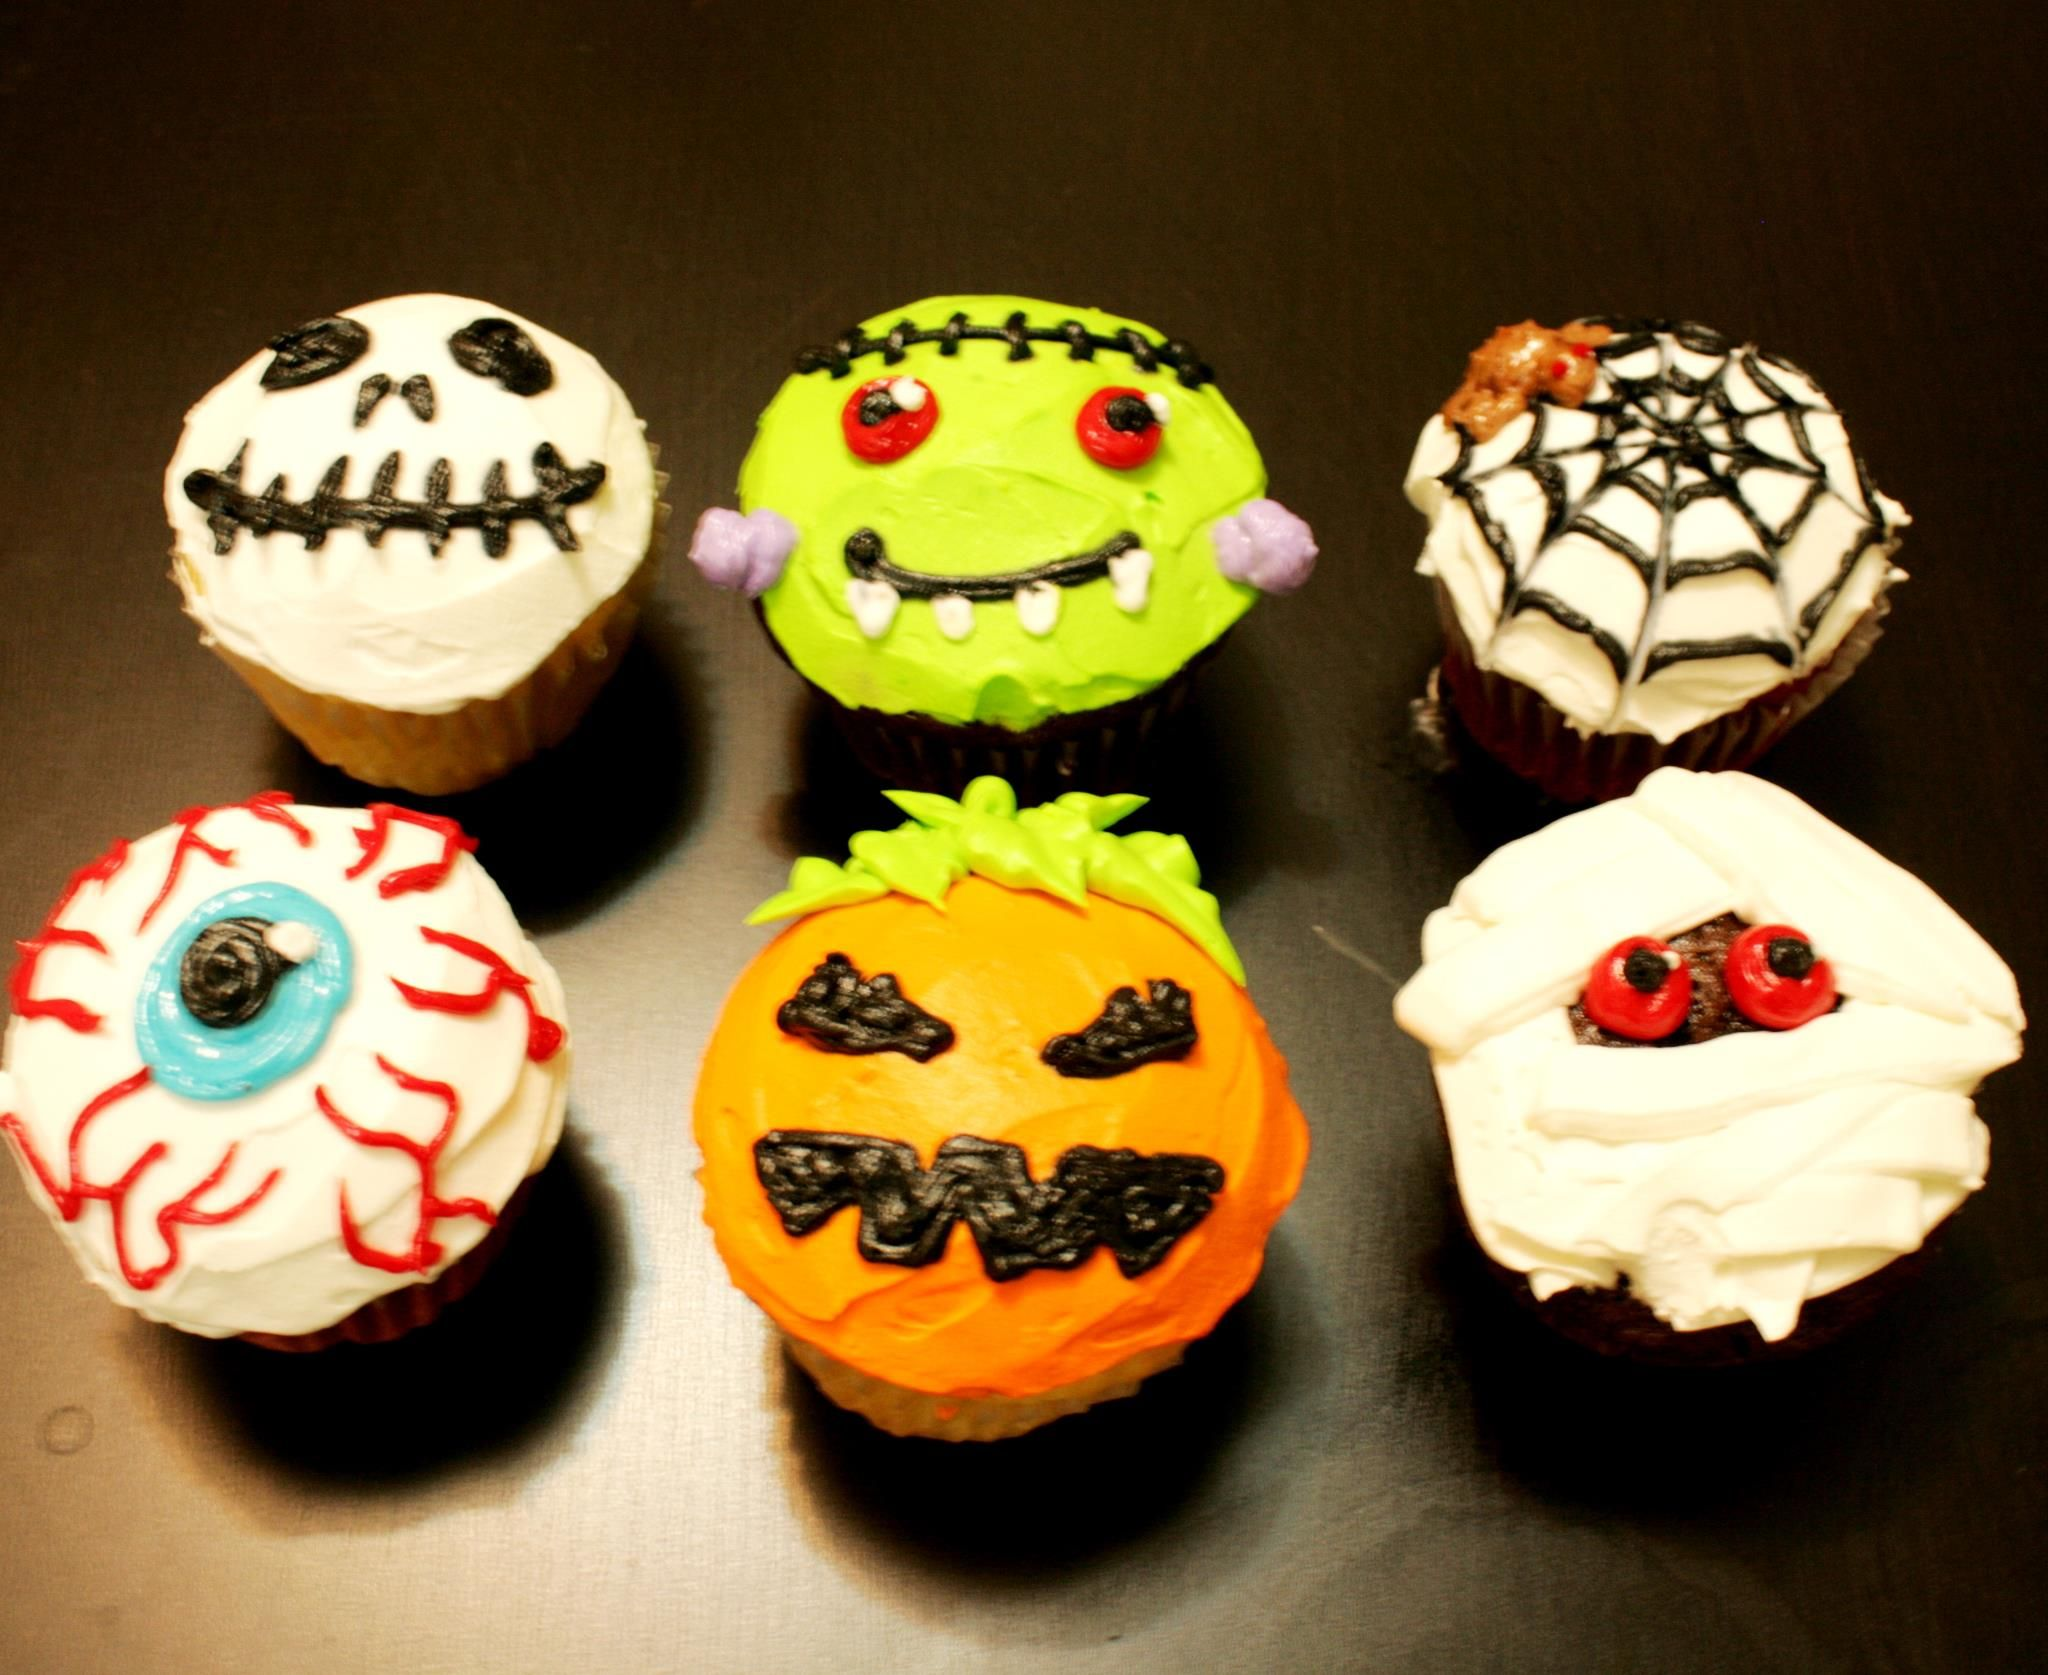 halloween cupcakes | halloween cupcakes I really like the eye balls! super easy! Cupcakes DecoratingCupcakes DesignDecorating ... & halloween cupcakes | halloween cupcakes I really like the eye balls ...